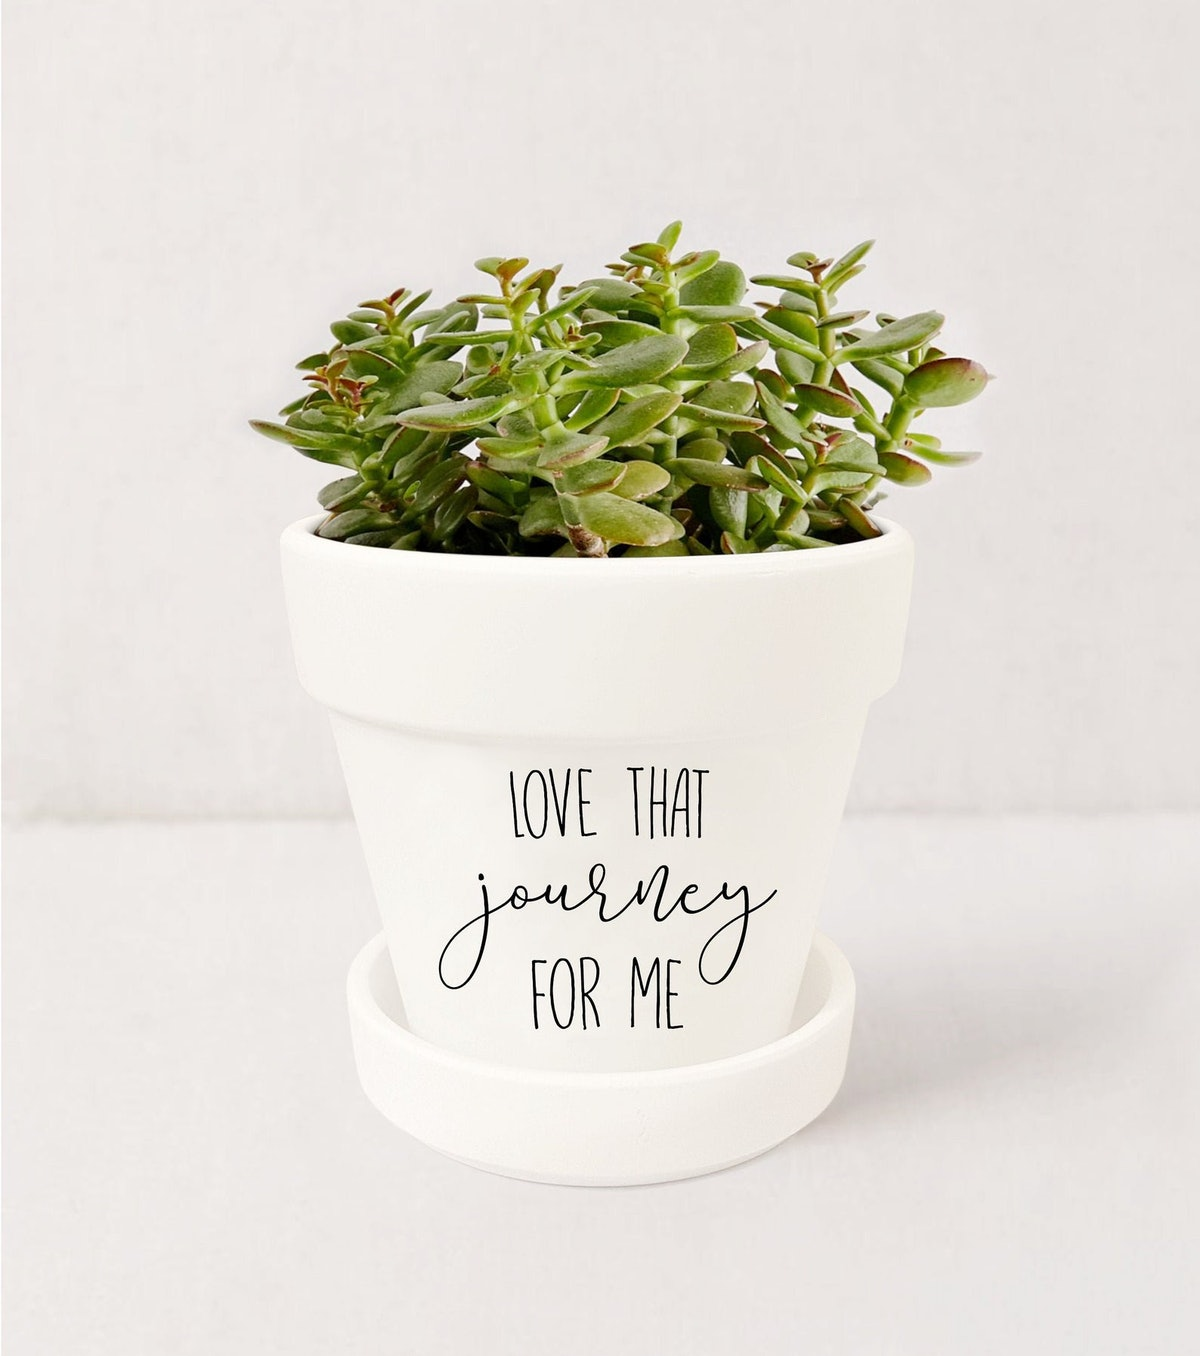 Love That Journey For Me Planter